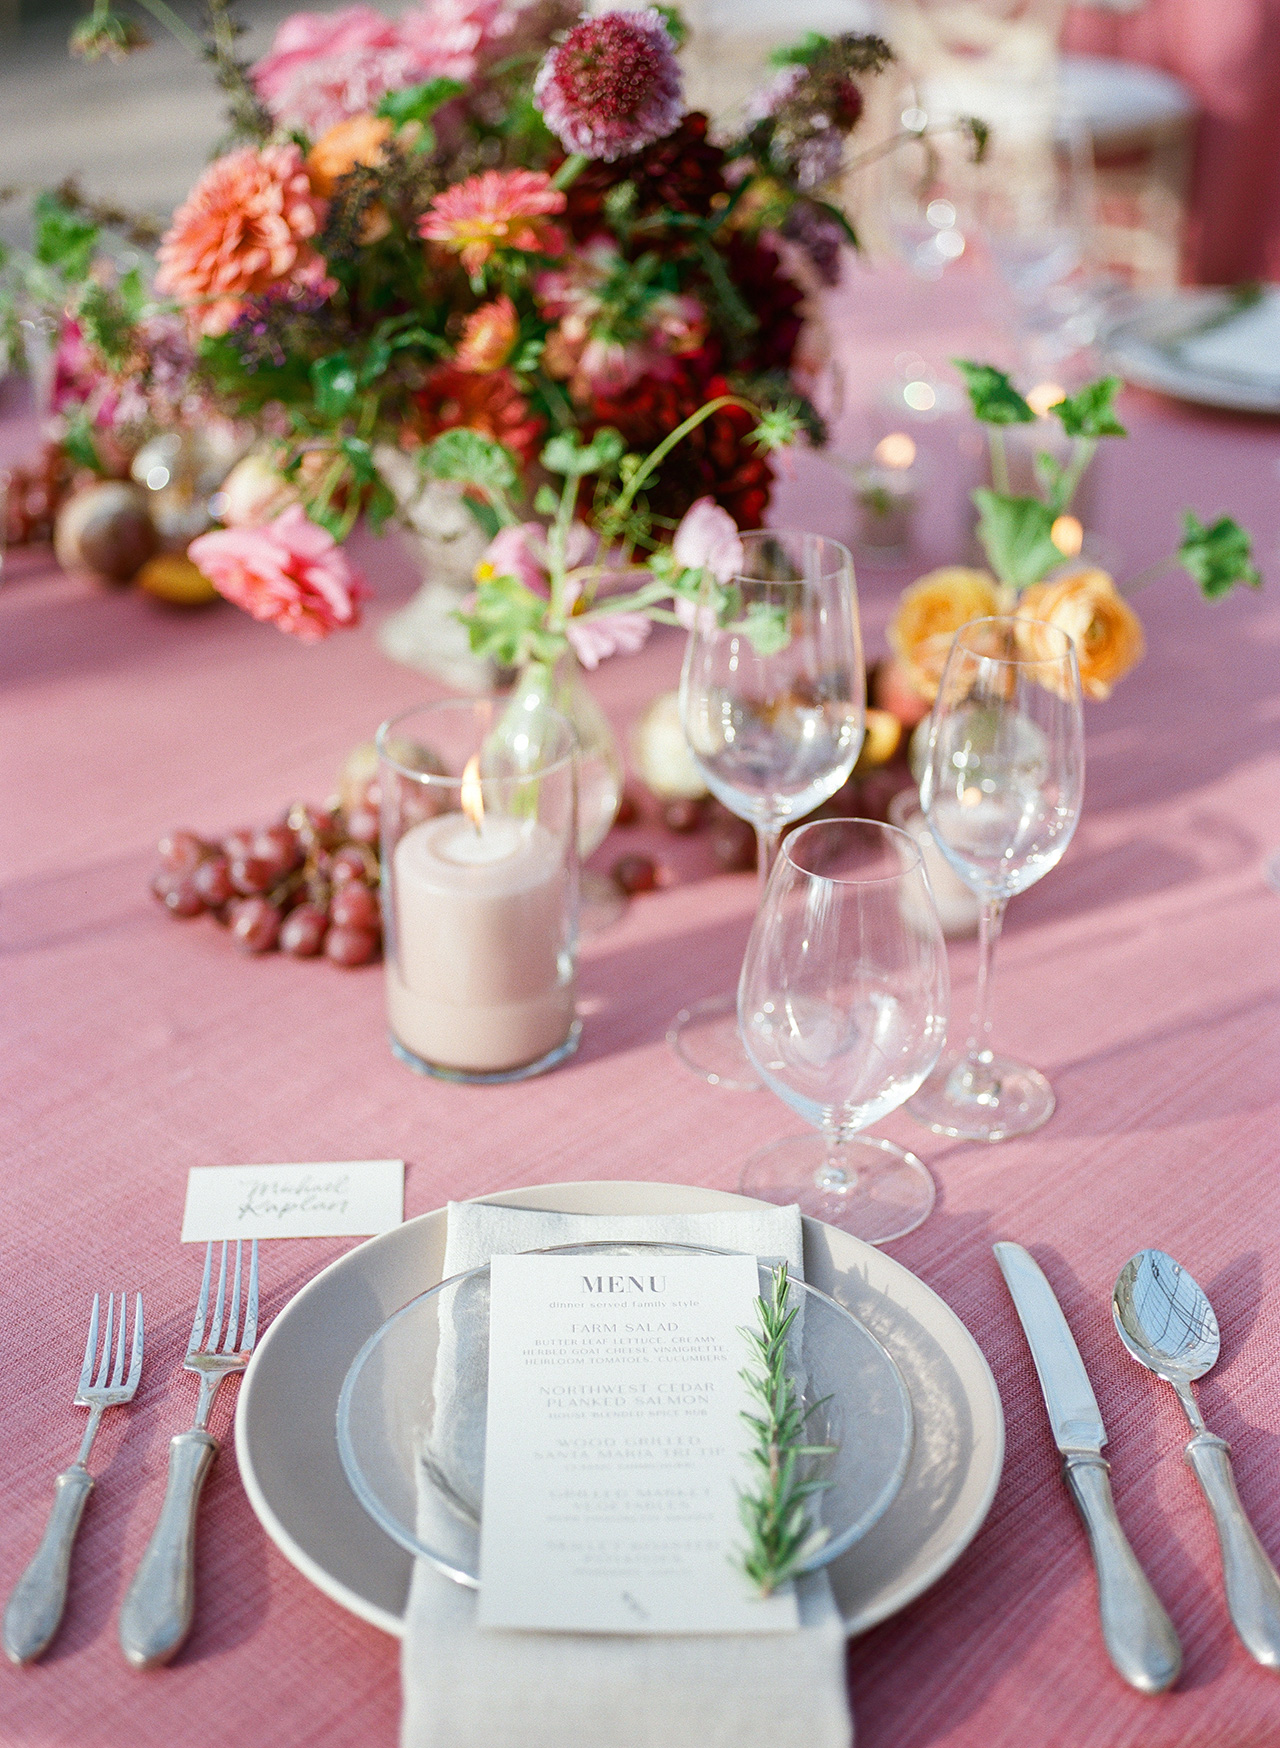 reception table setting pink cloth menu rosemary